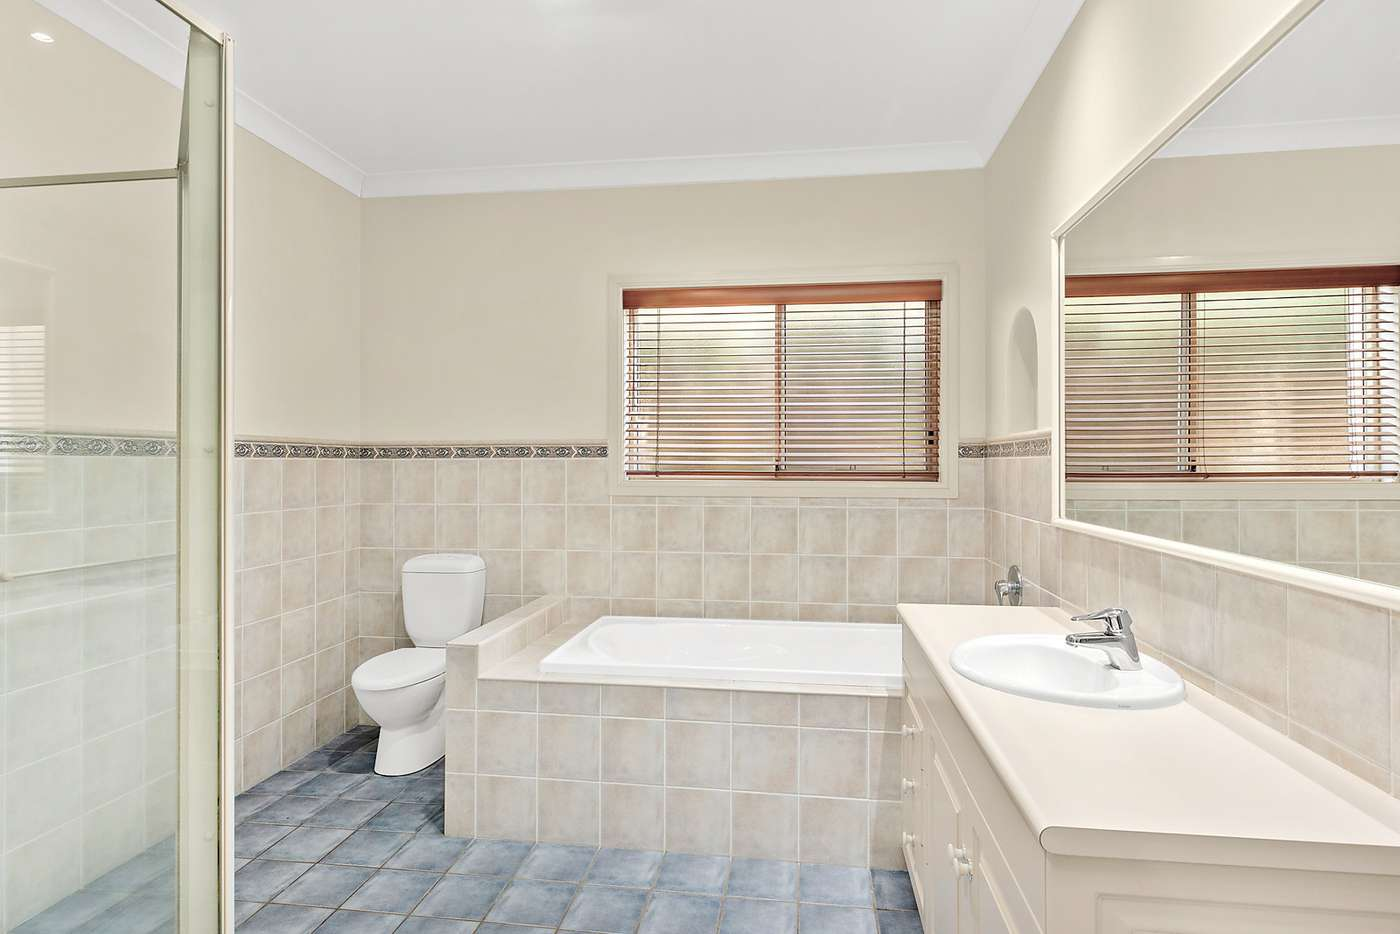 Sixth view of Homely house listing, 6 Bluewater Place, Sapphire Beach NSW 2450